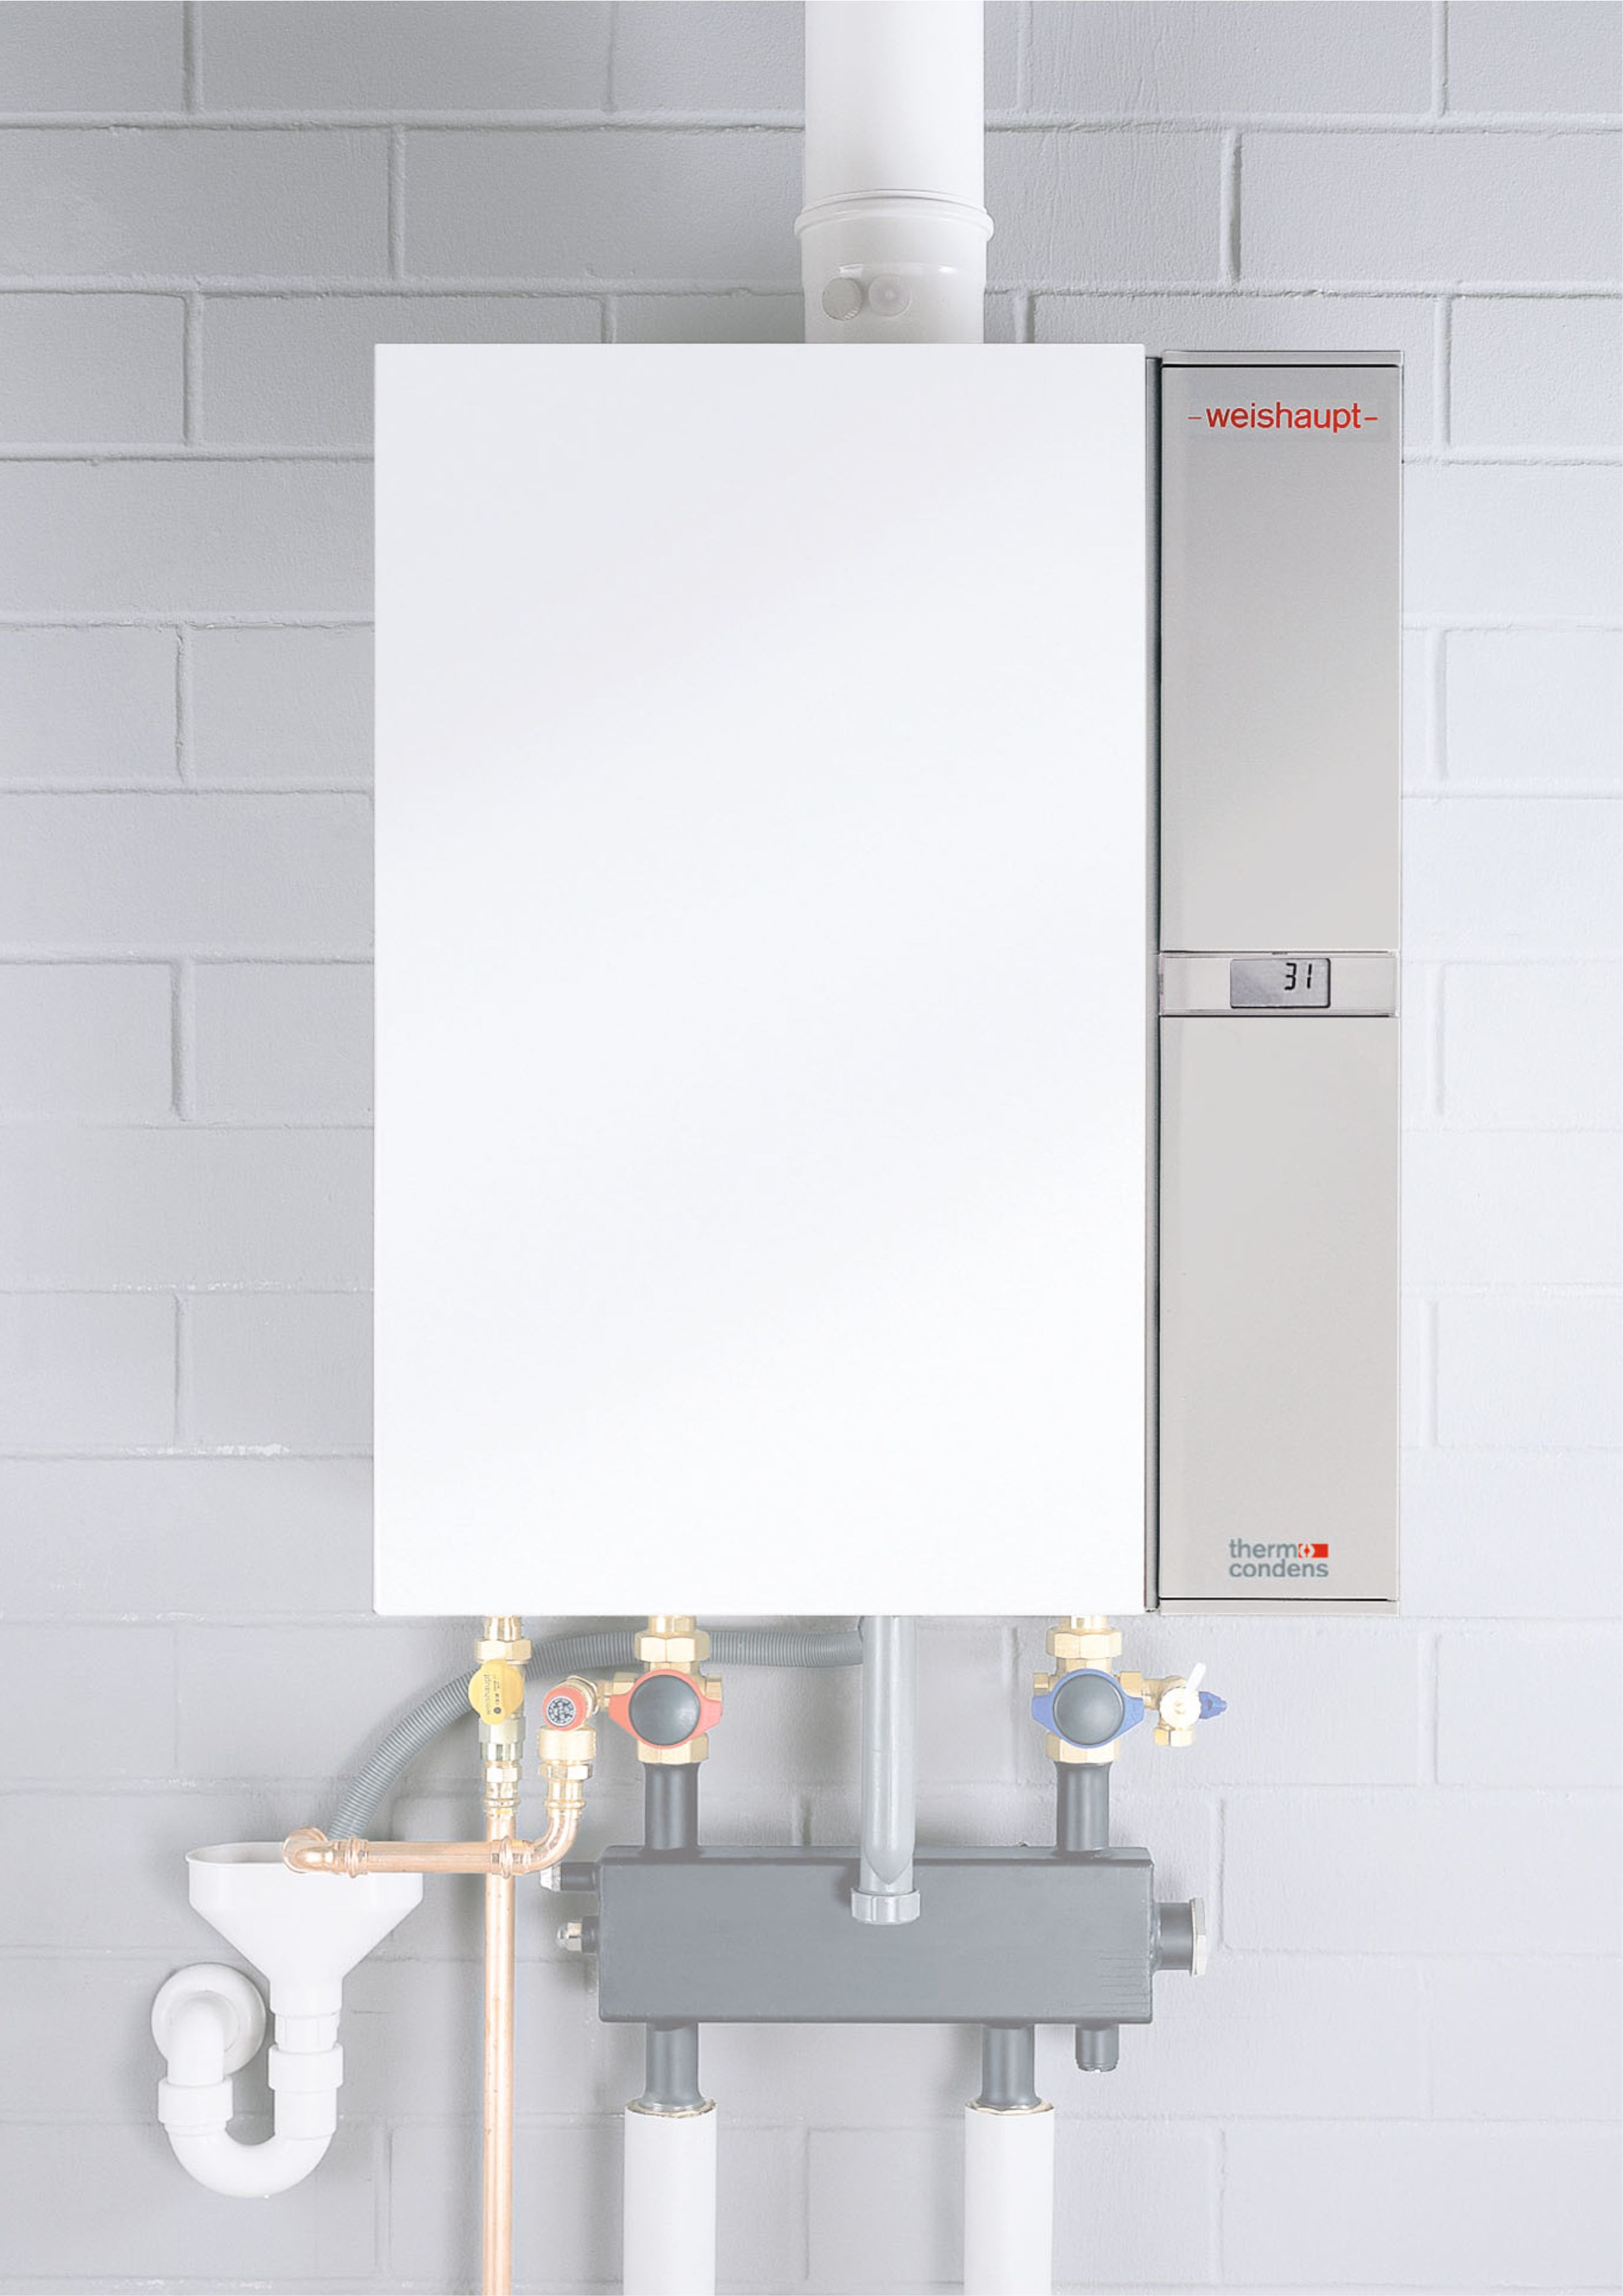 ThermoCondens bis 240kW